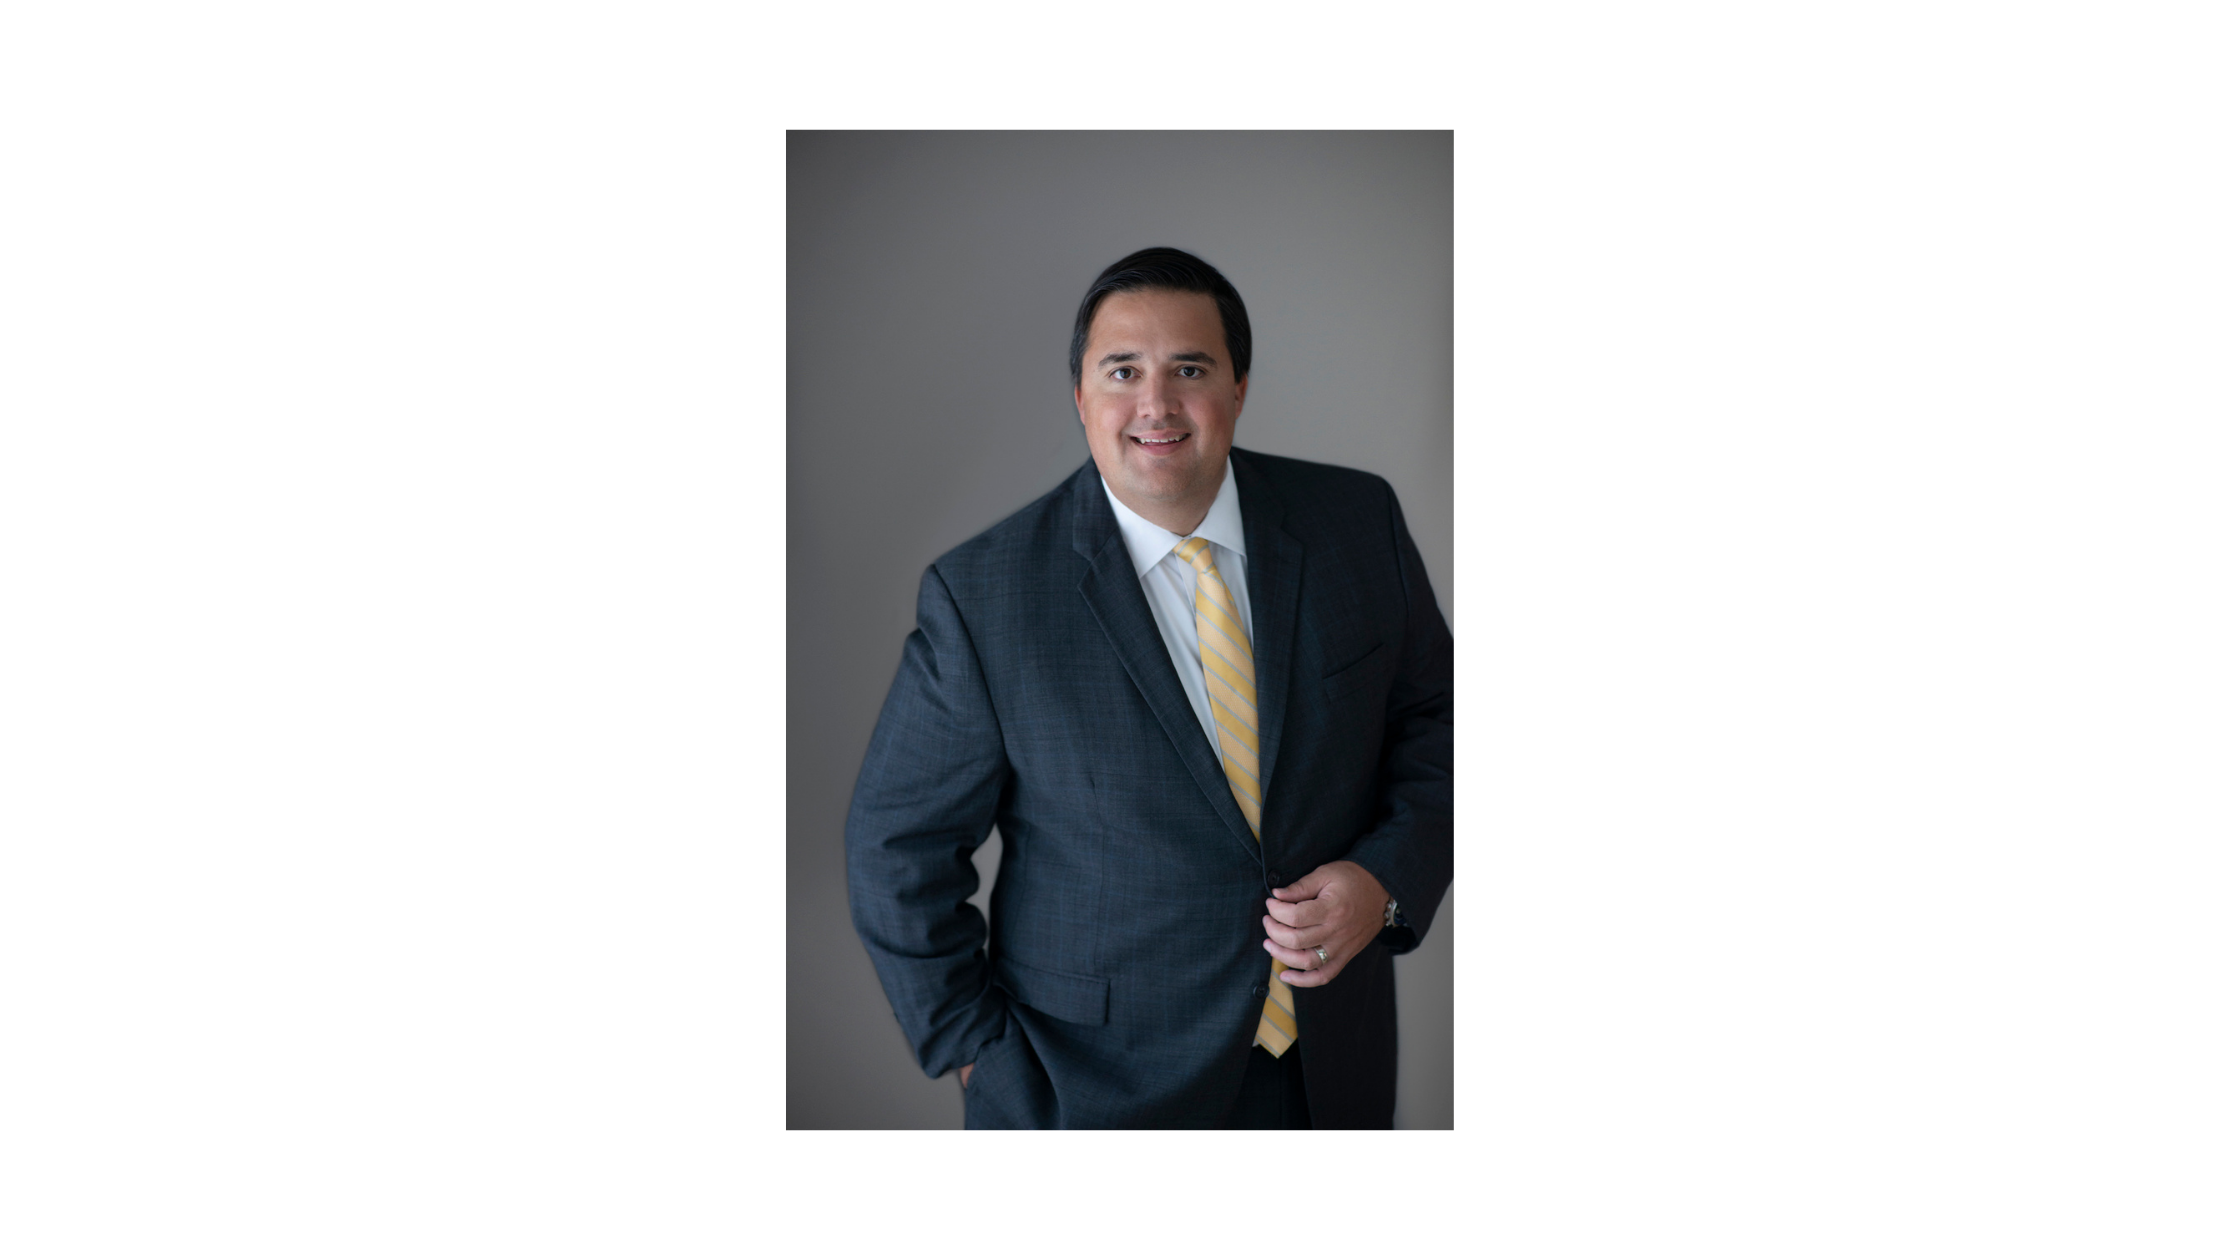 Pavese Law Firm attorney, Christopher L. Pope, earns Board Certification in Construction Law, joining a select group of specialists